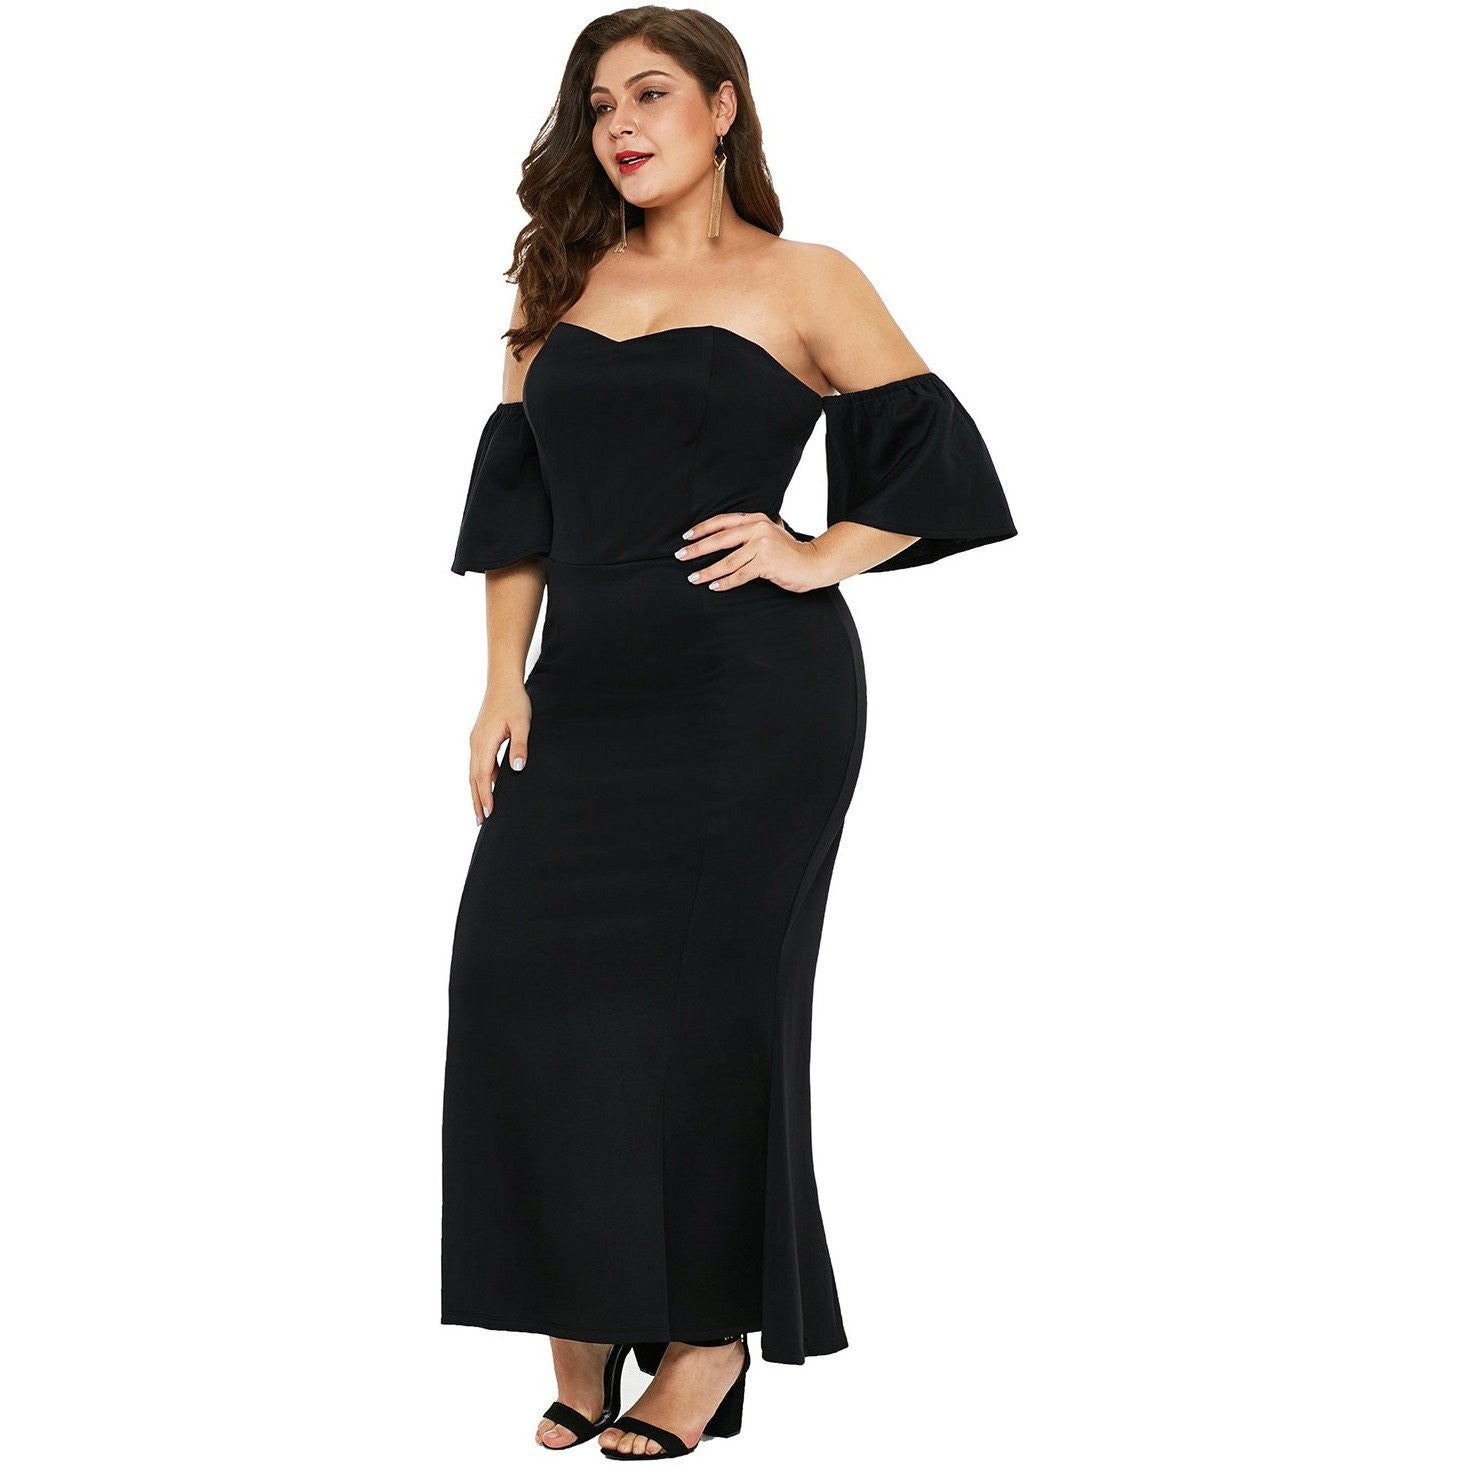 KELLIPS Black Sexy Strapless Plus Size Maxi Dress - KELLIPS